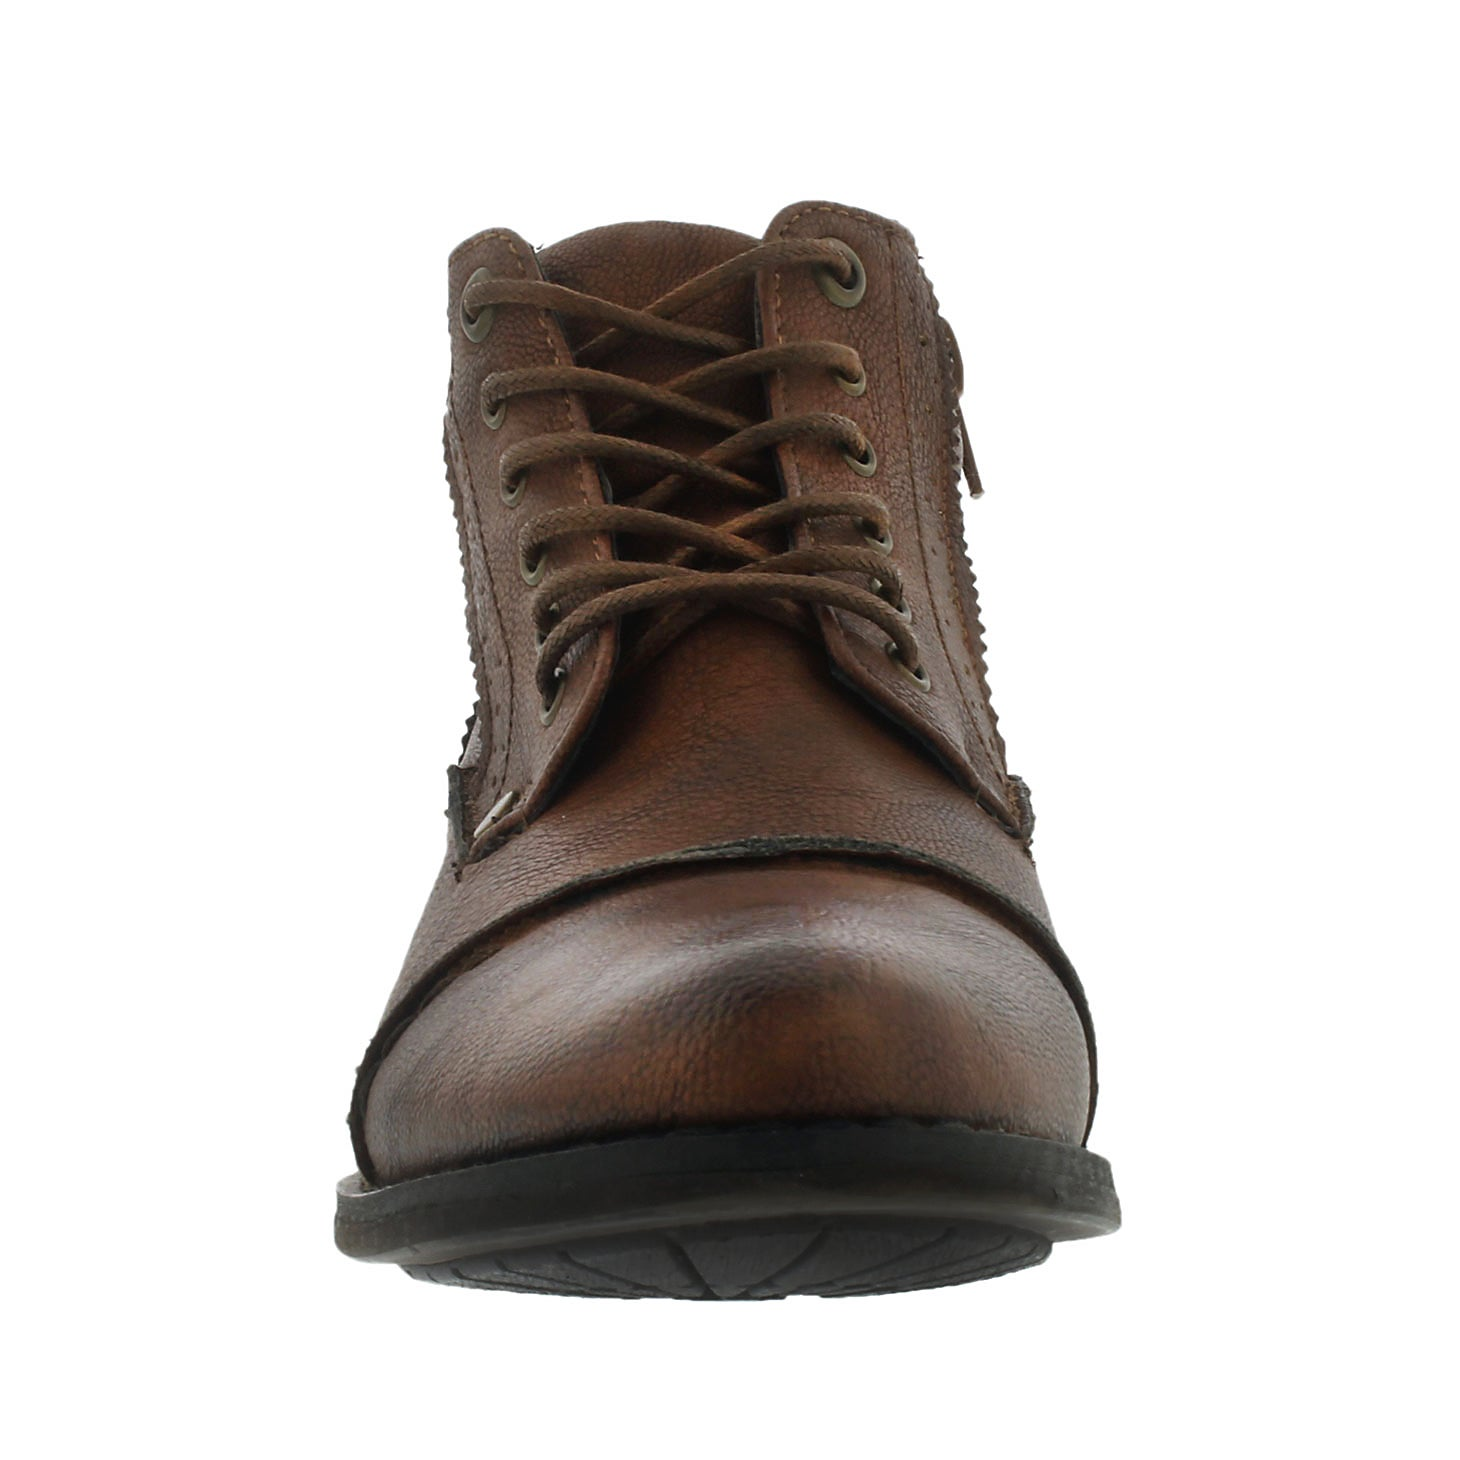 Lds Belicia cognac lace up ankle boot